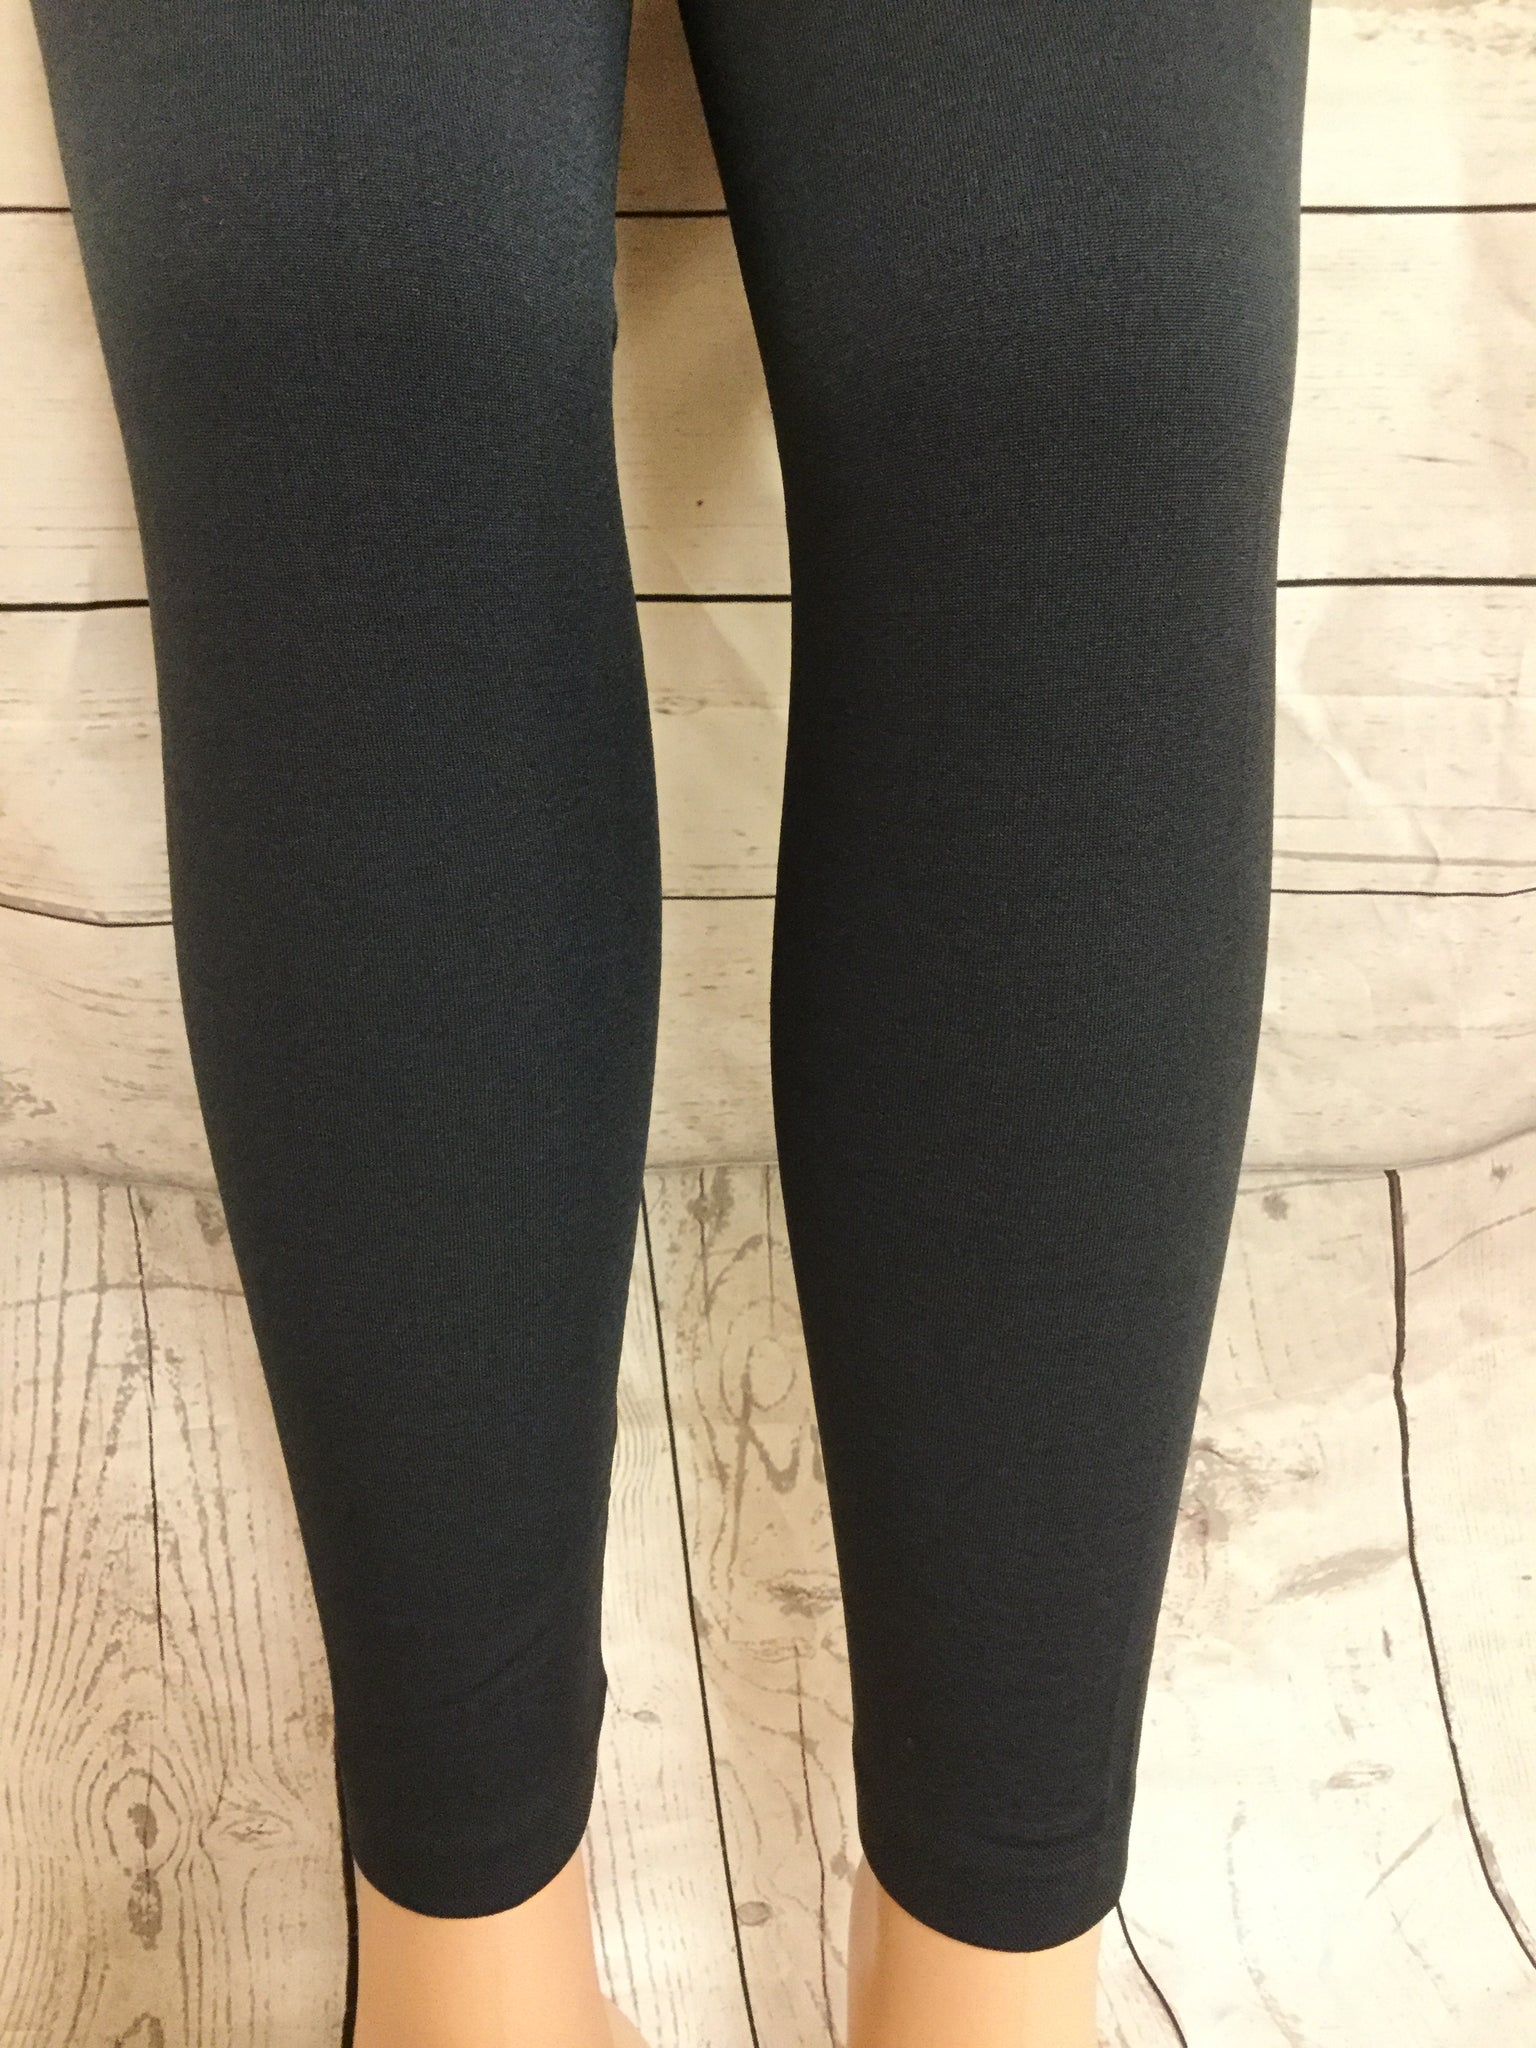 SOLID CHARCOAL FLEECE LINED LEGGINGS